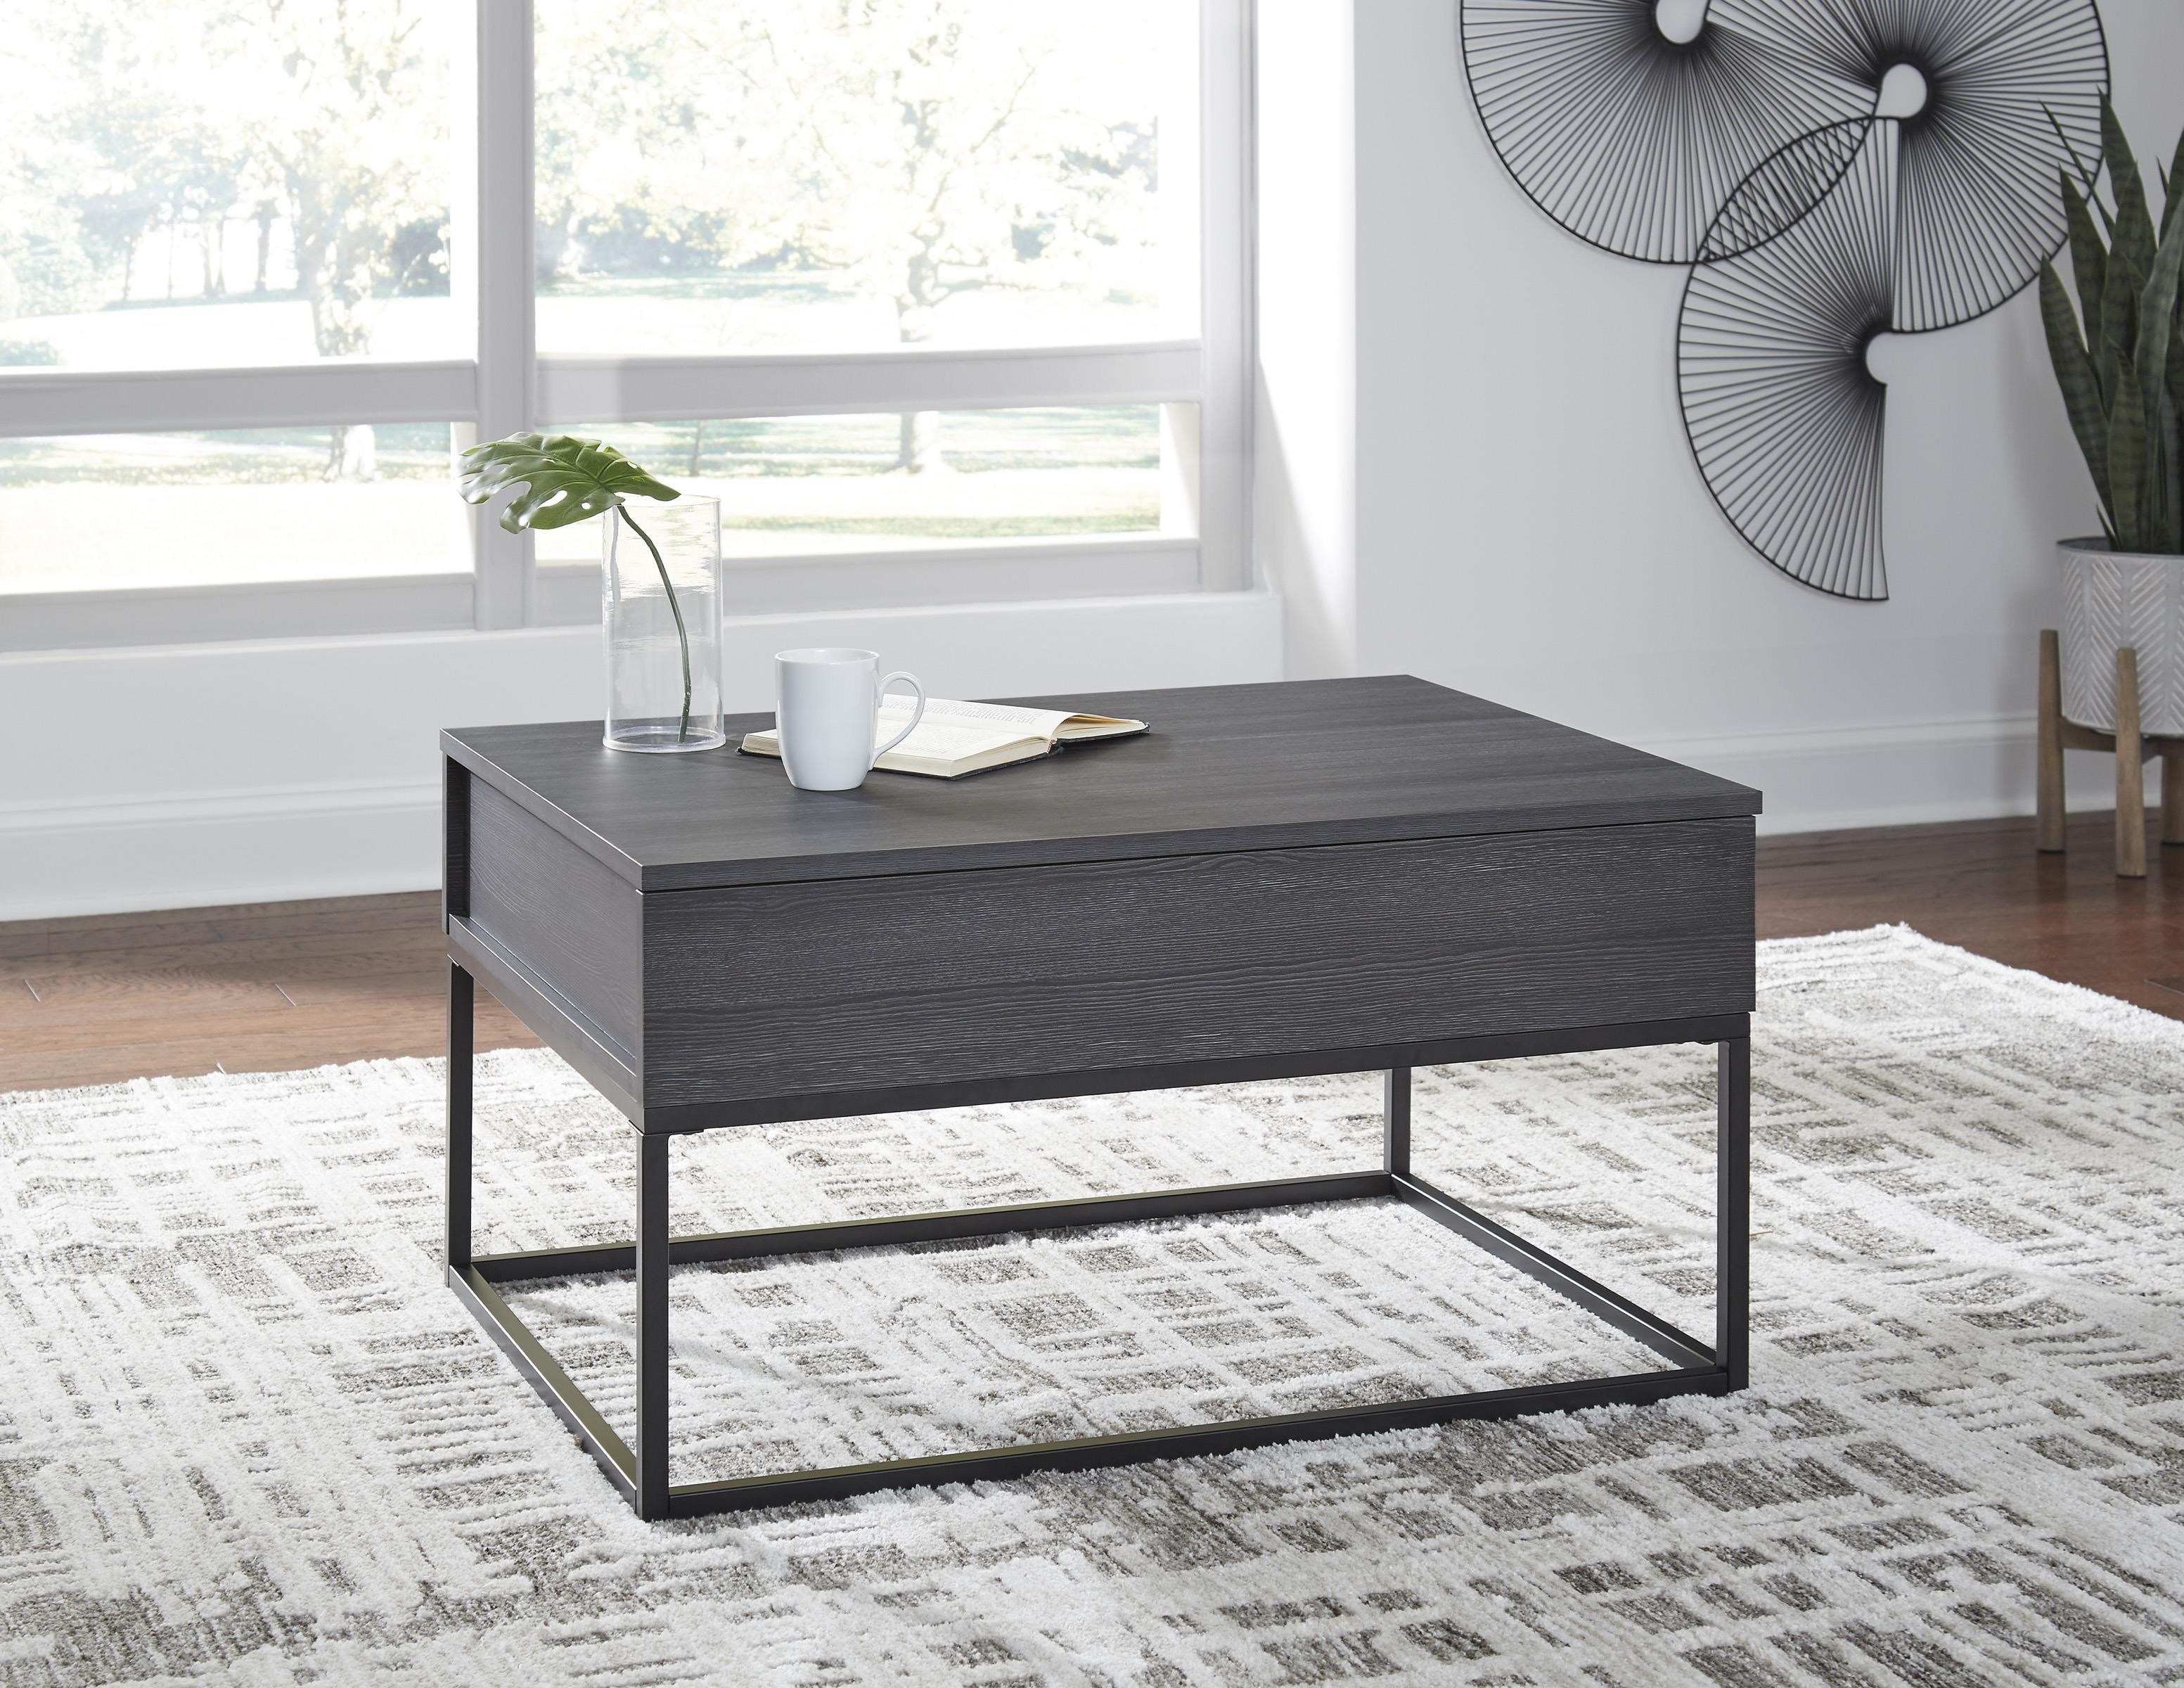 Yarlow 3 Piece Coffee Table Set by Signature Design by Ashley at Sam Levitz Outlet